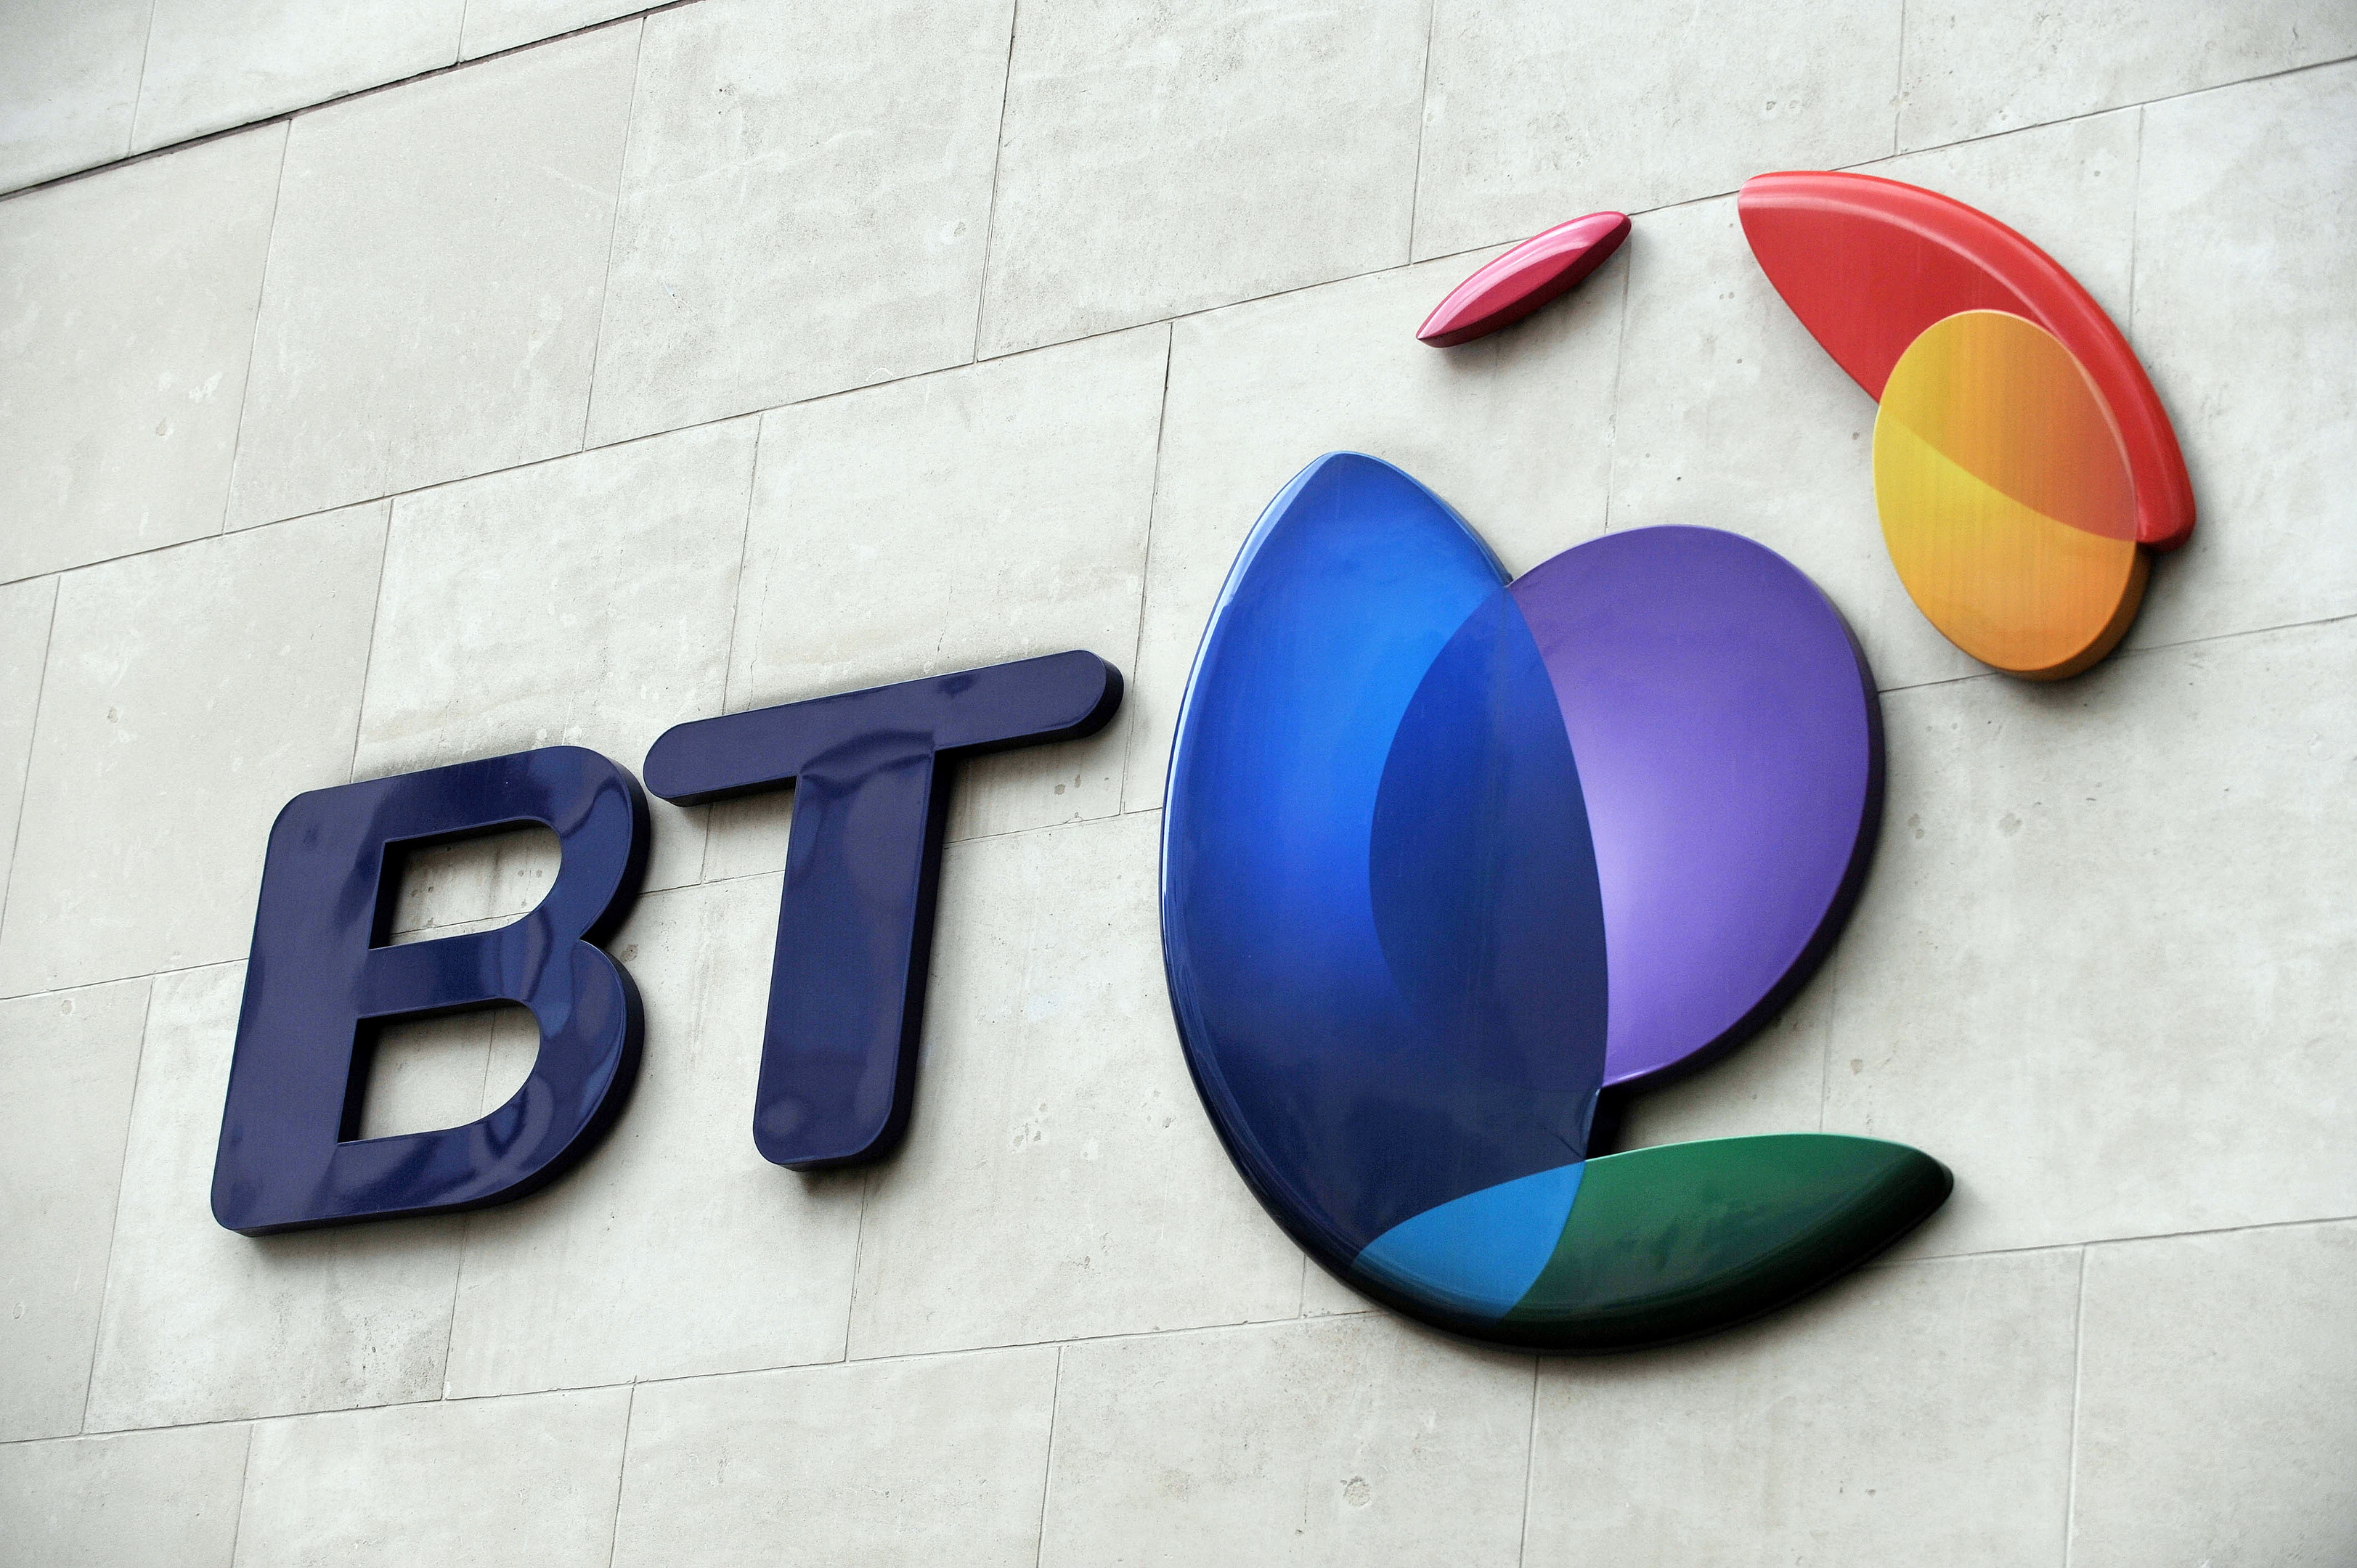 The telecoms giant is to axe around 13,000 jobs over three years as it aims to cut costs (Nick Ansell/PA Wire)